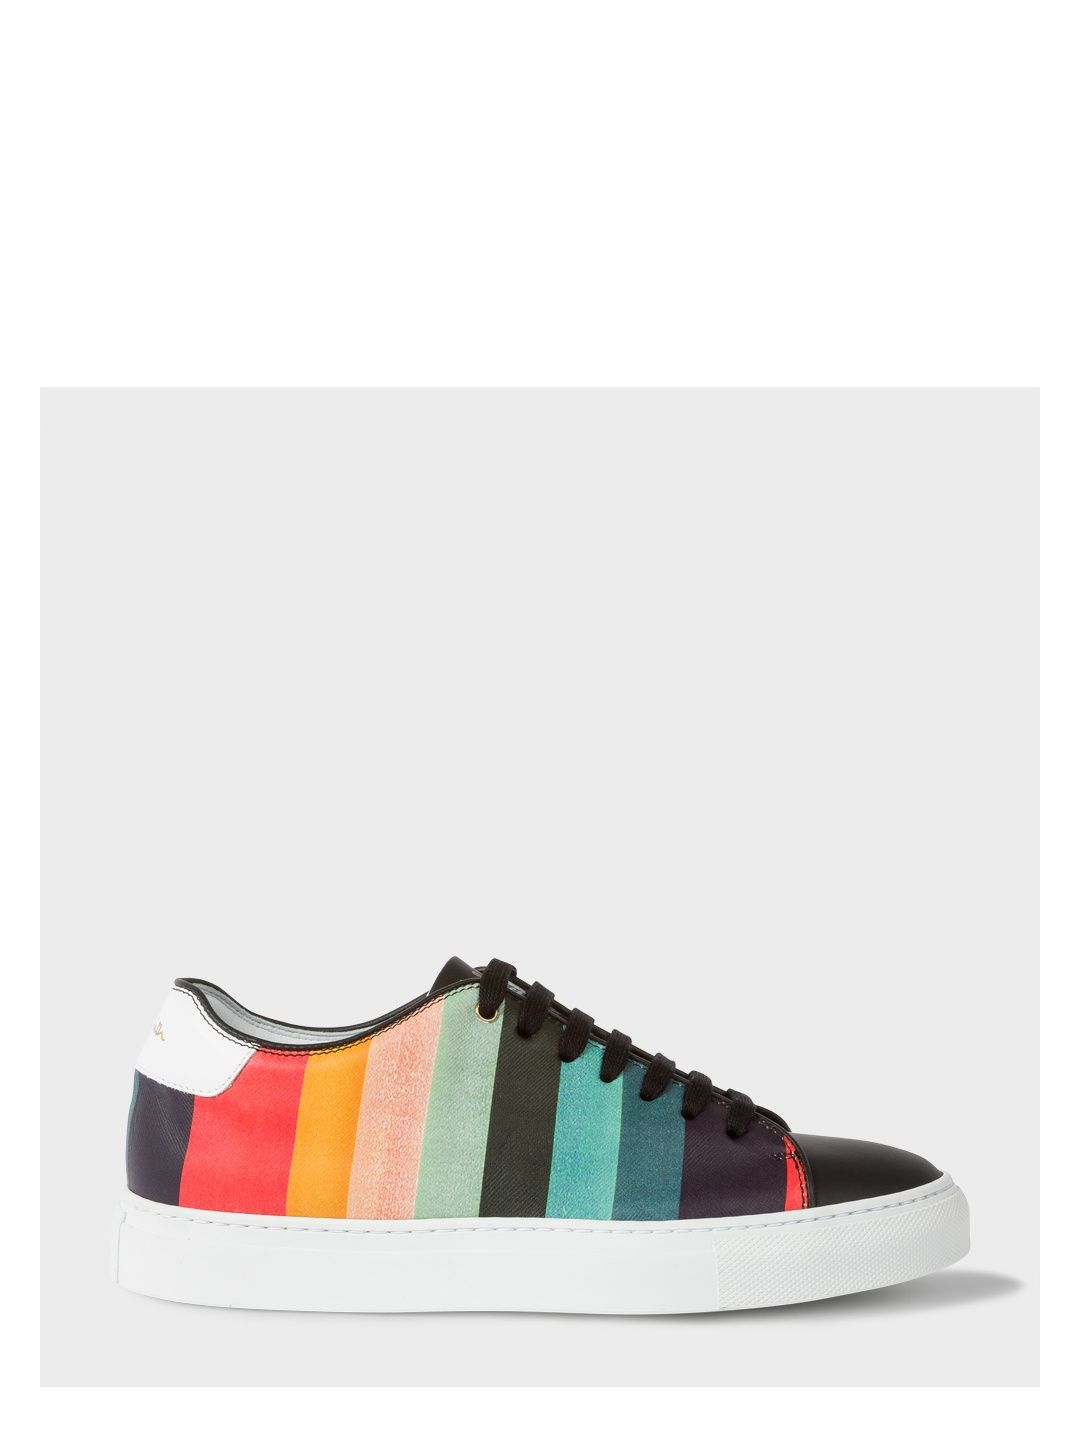 e3f5ad9b145 PAUL SMITH Women s  Artist Stripe  Leather  Basso  Trainers.  paulsmith   shoes